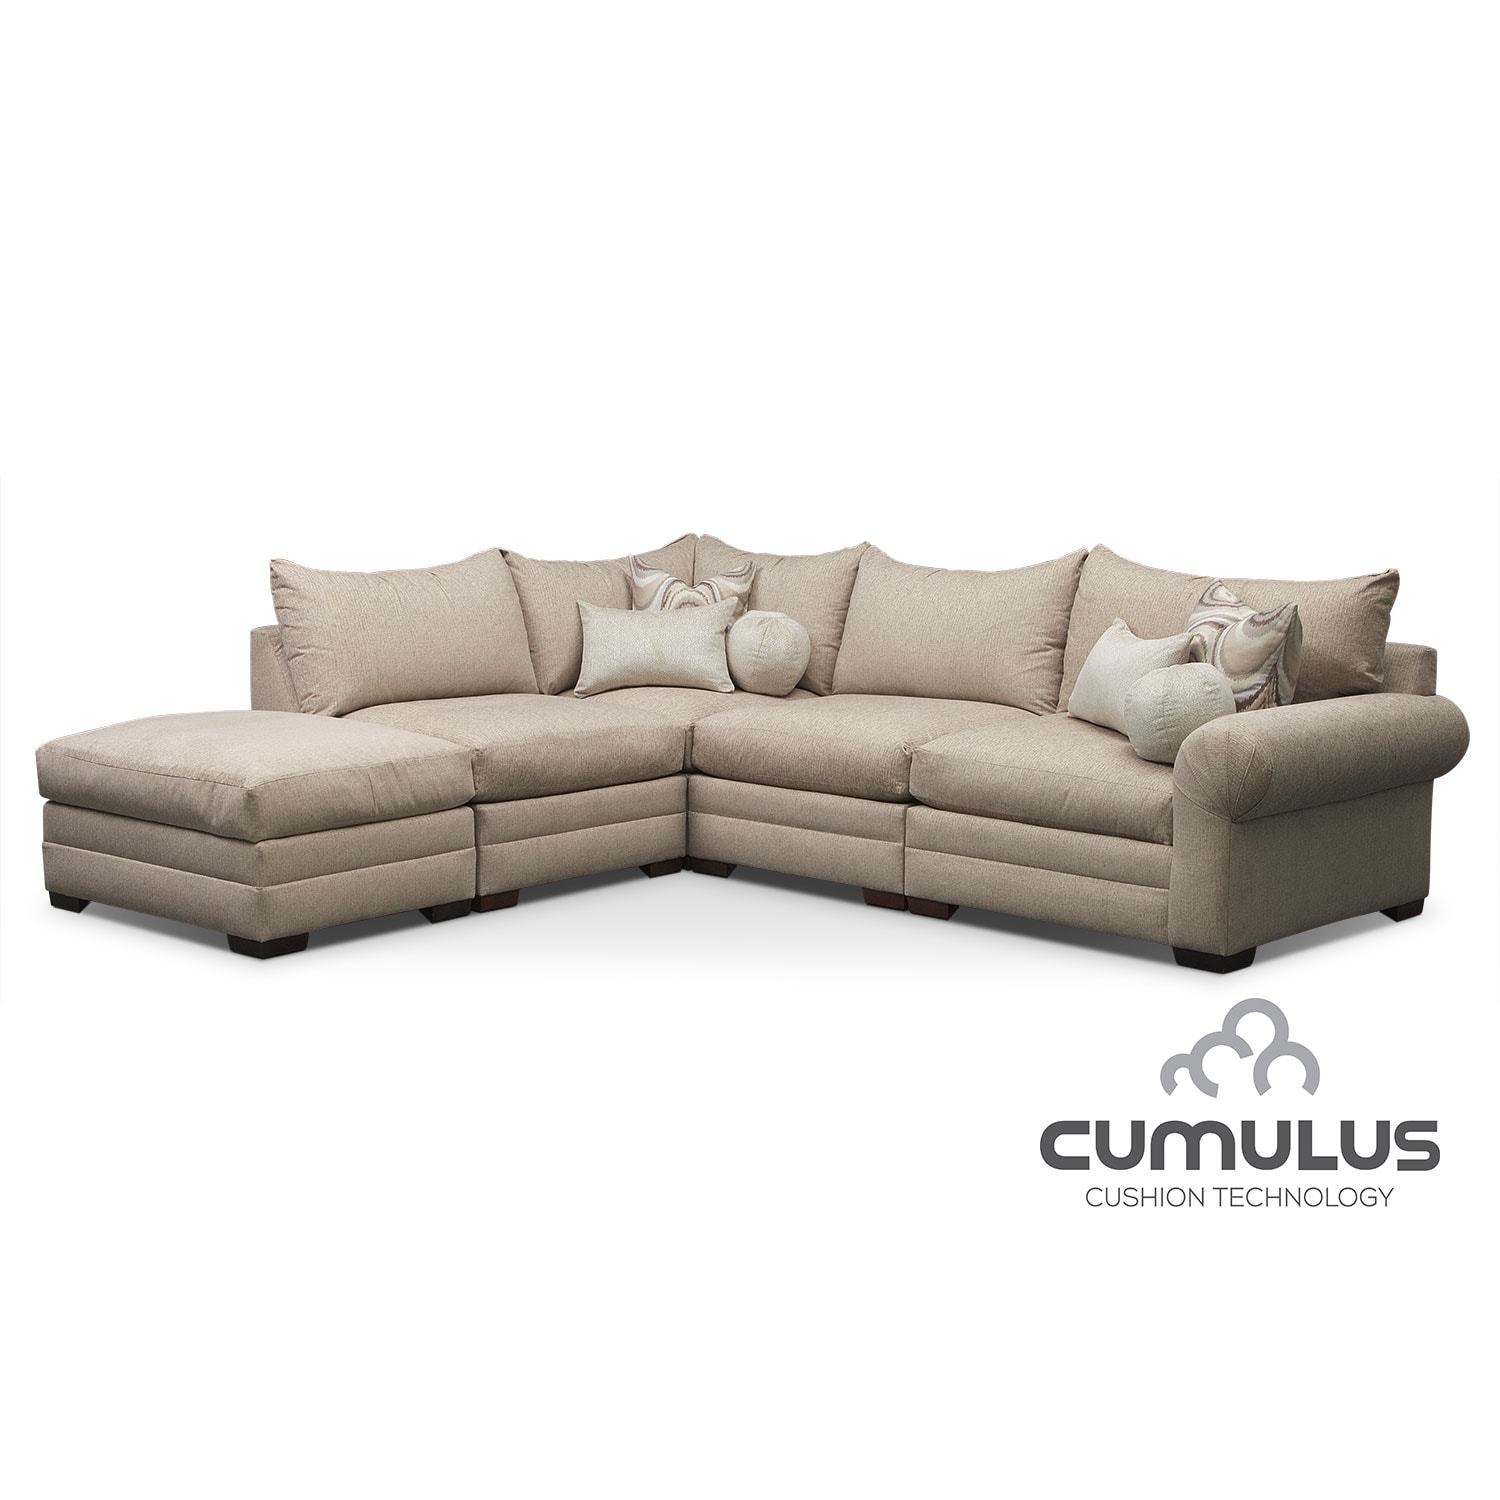 Living Room Furniture - Wilshire 5-Piece Left-Facing Sectional - Cream